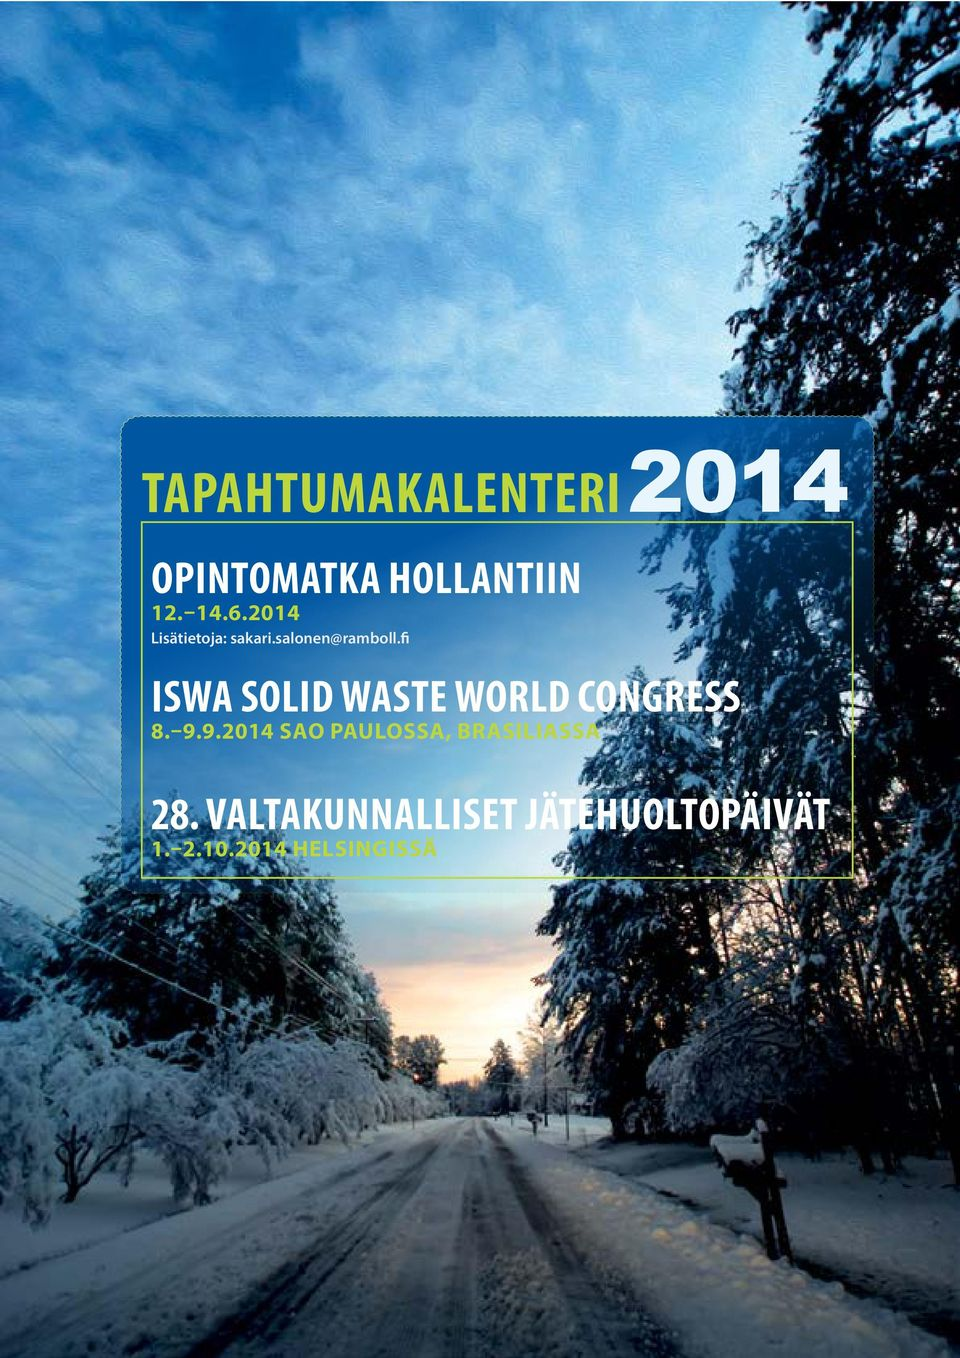 fi ISWA SOLID WASTE WORLD CONGRESS 8. 9.